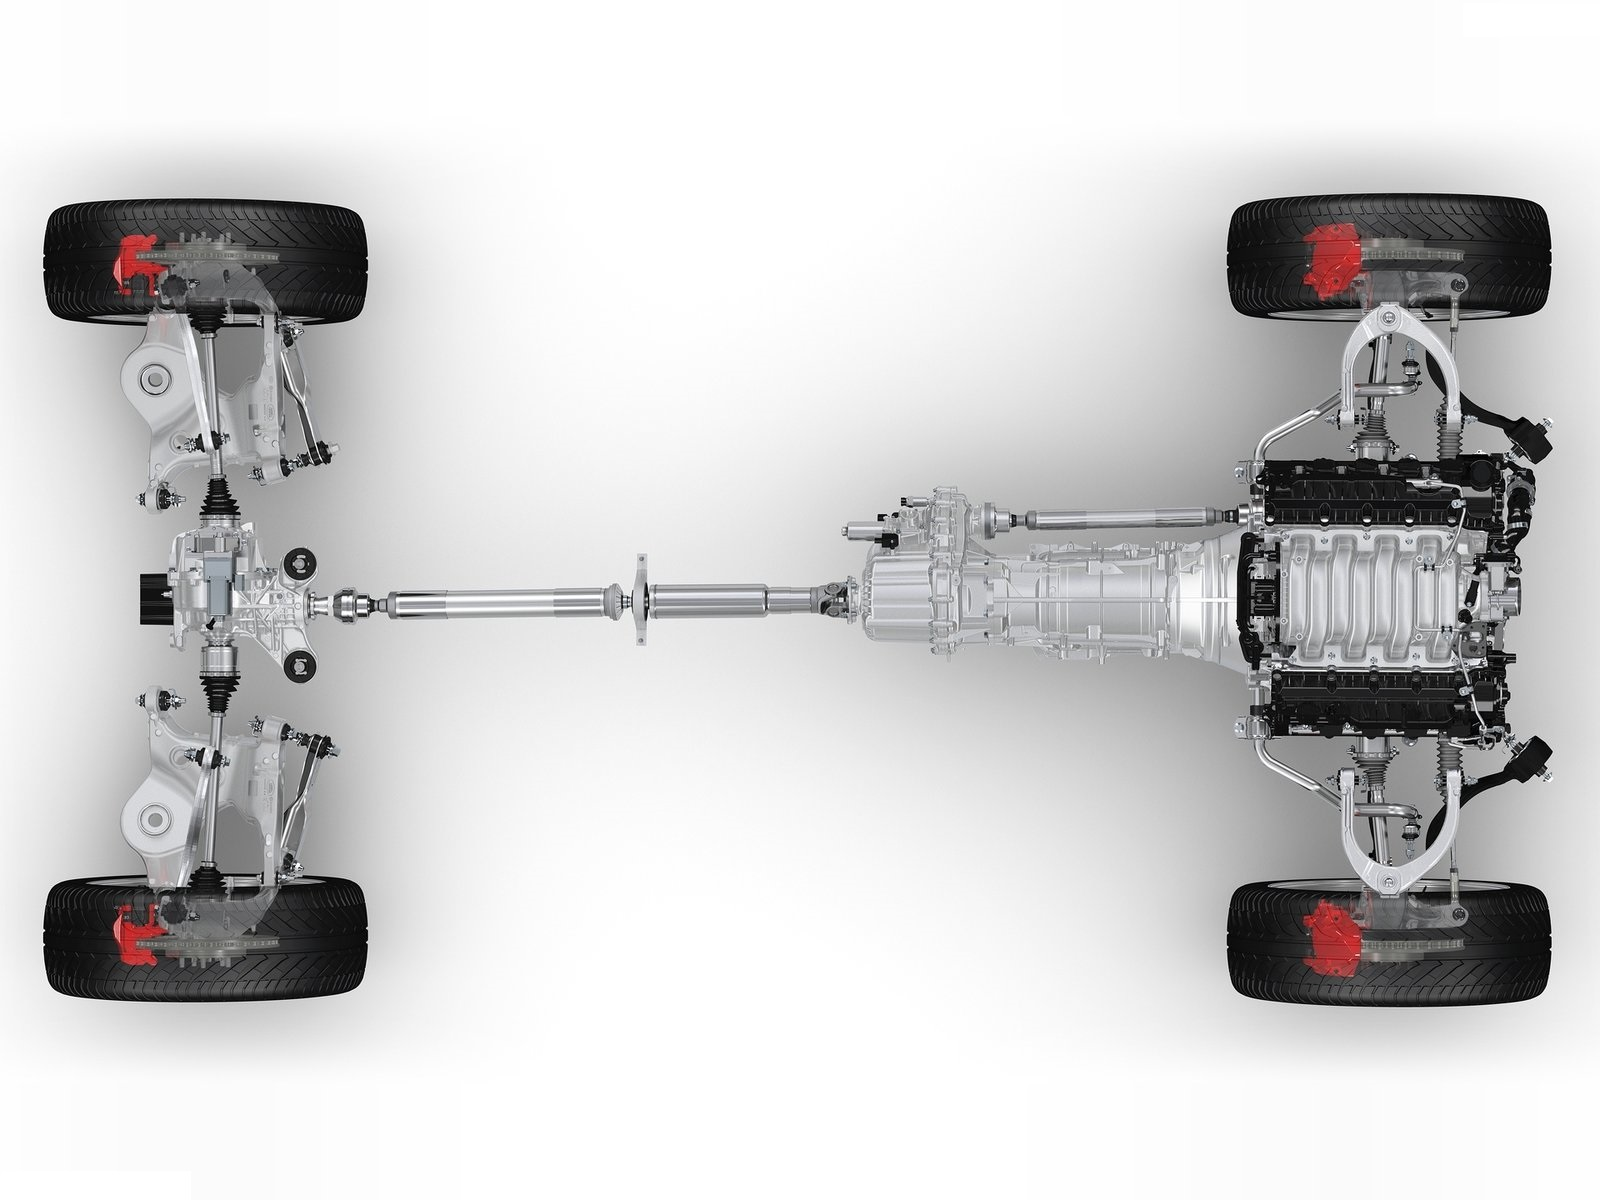 Land Rover AWD System Dissected: Range Rover, Range Rover Sport